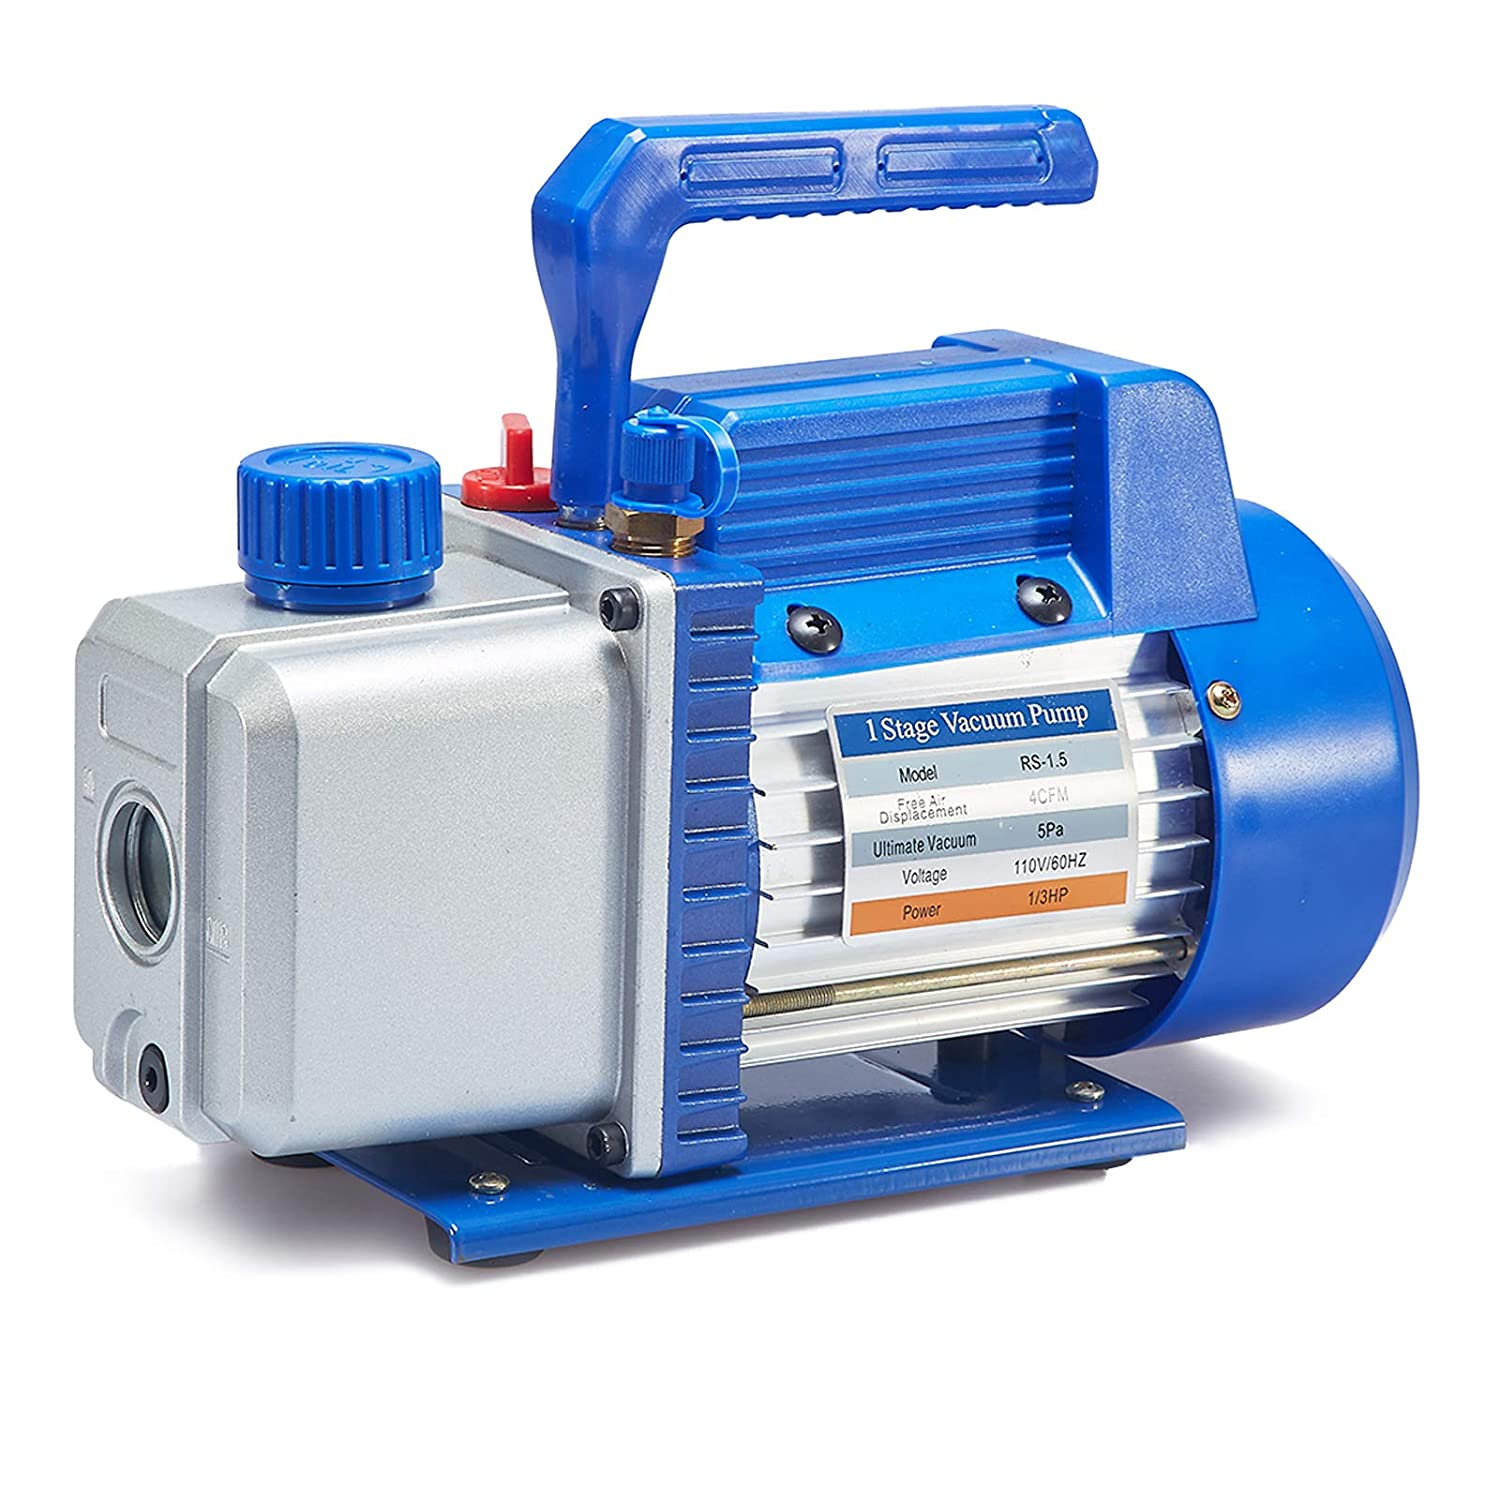 NewPosition Rotary Vane Vacuum Pump for HVAC, Air Conditioner Refrigerant,Food Packaging,Milking,Medical etc (4.0 CFM)